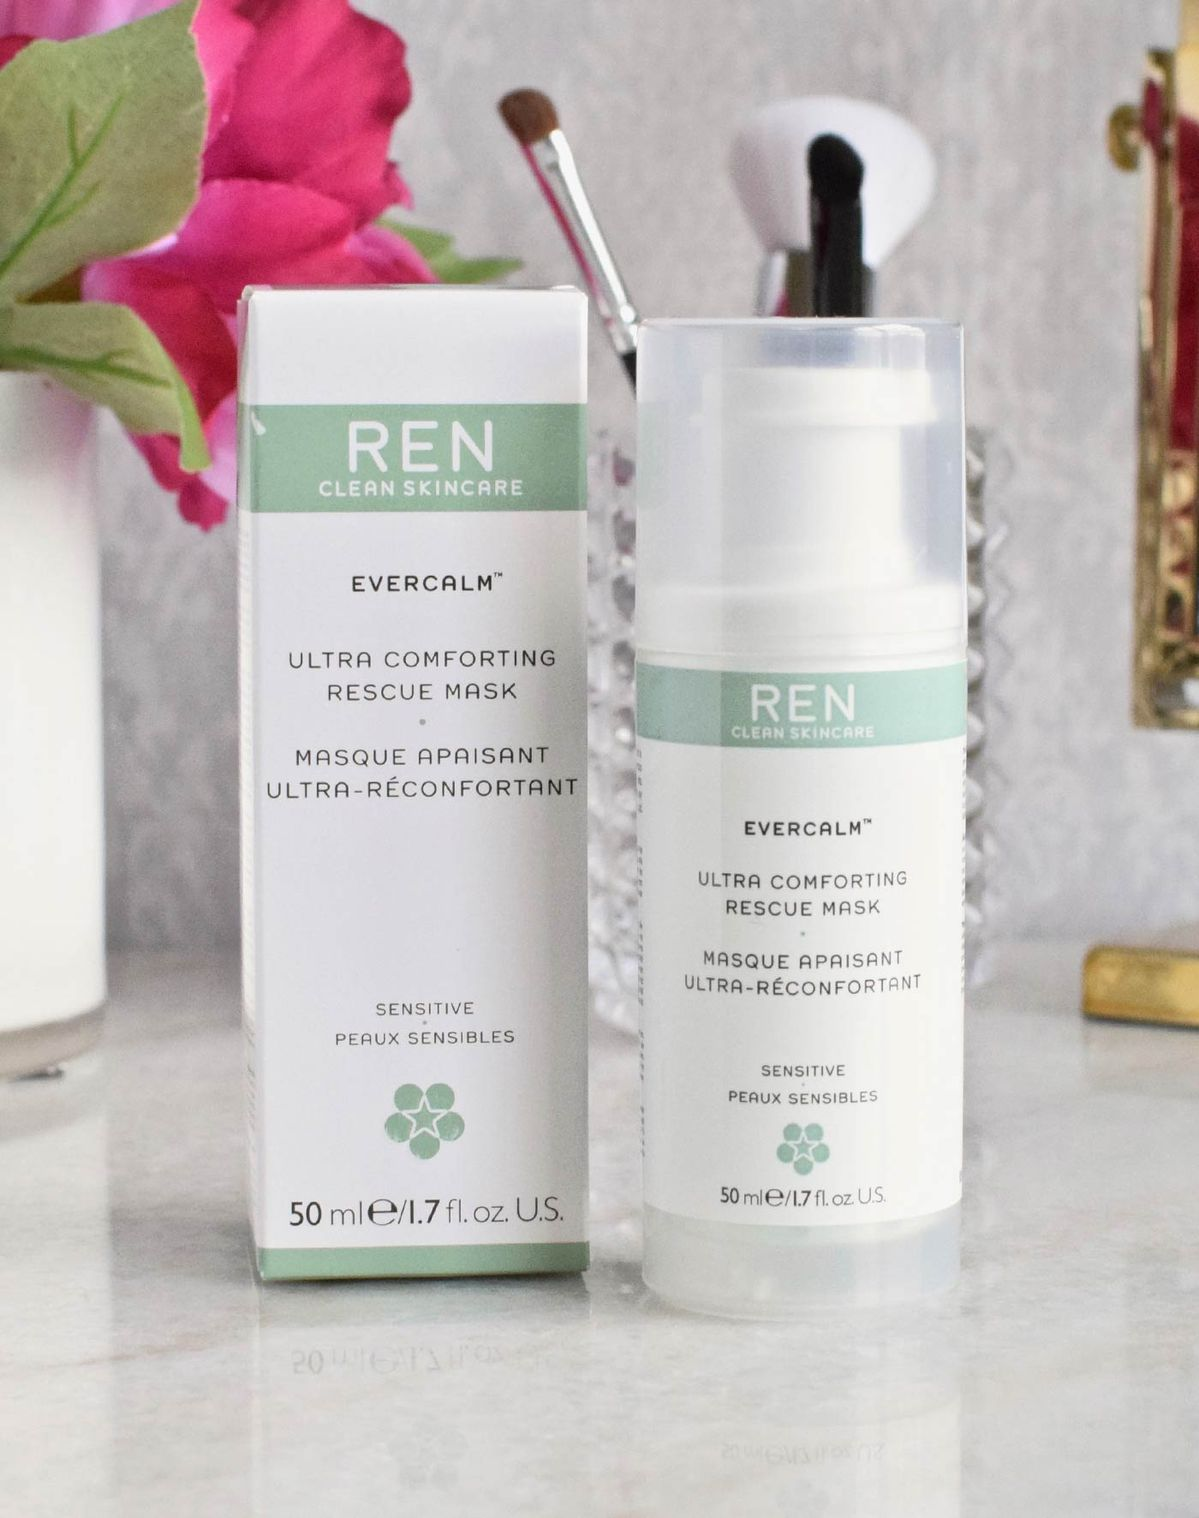 The Ren Evercalm Ultra Comforting Rescue Mask makes a huge difference when my skin is red and irritated. A must have if you have rosacea!